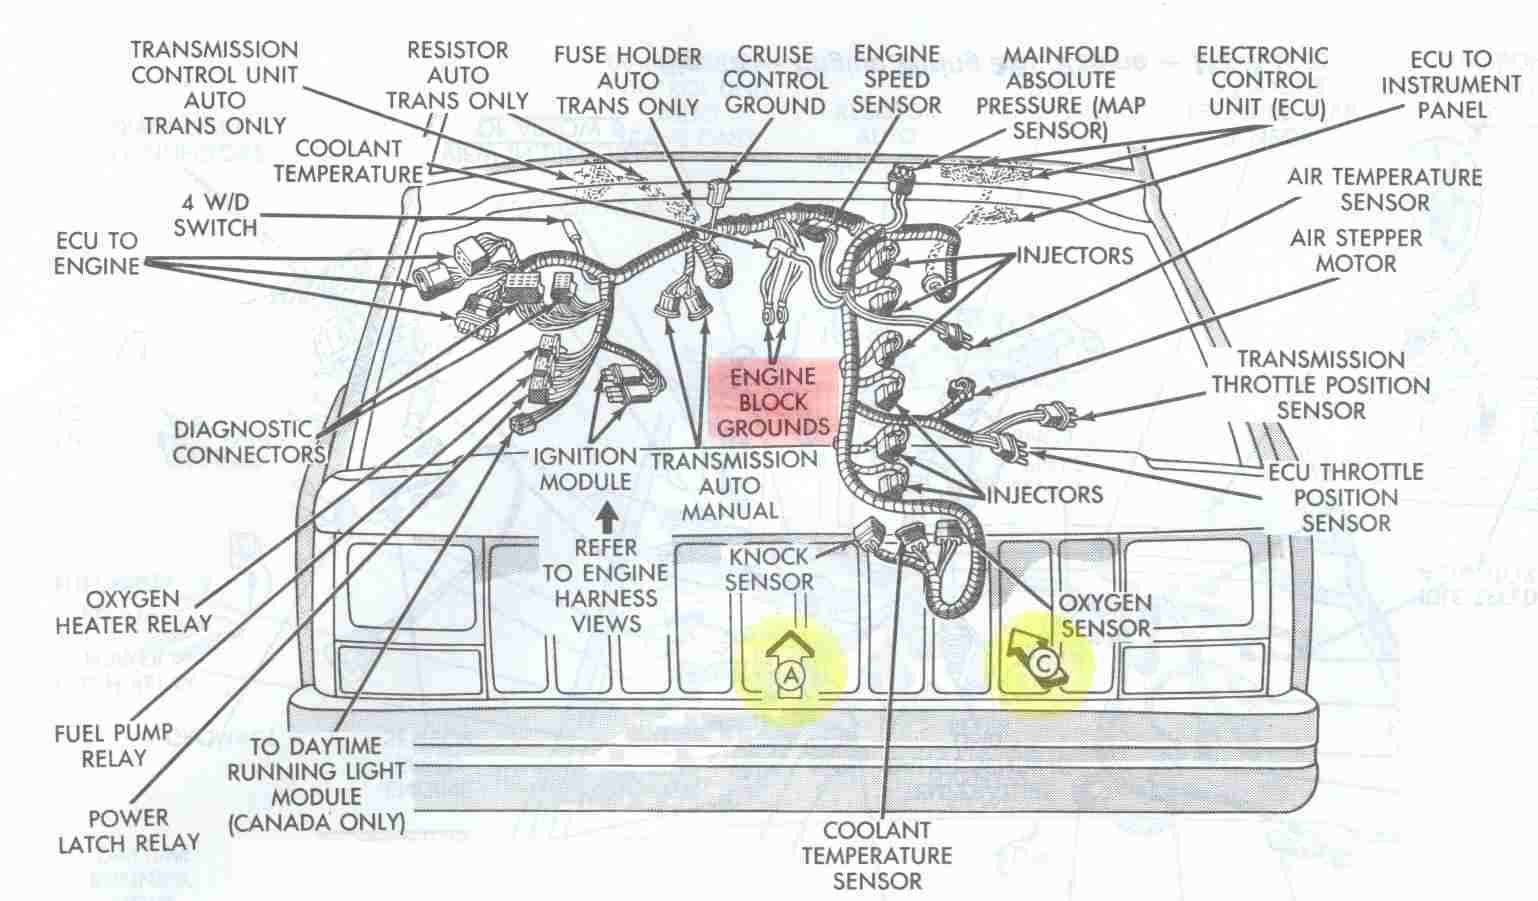 ab0134a7d9e021431187af597eb4aeca engine bay schematic showing major electrical ground points for 2004 jeep wrangler engine diagram at n-0.co